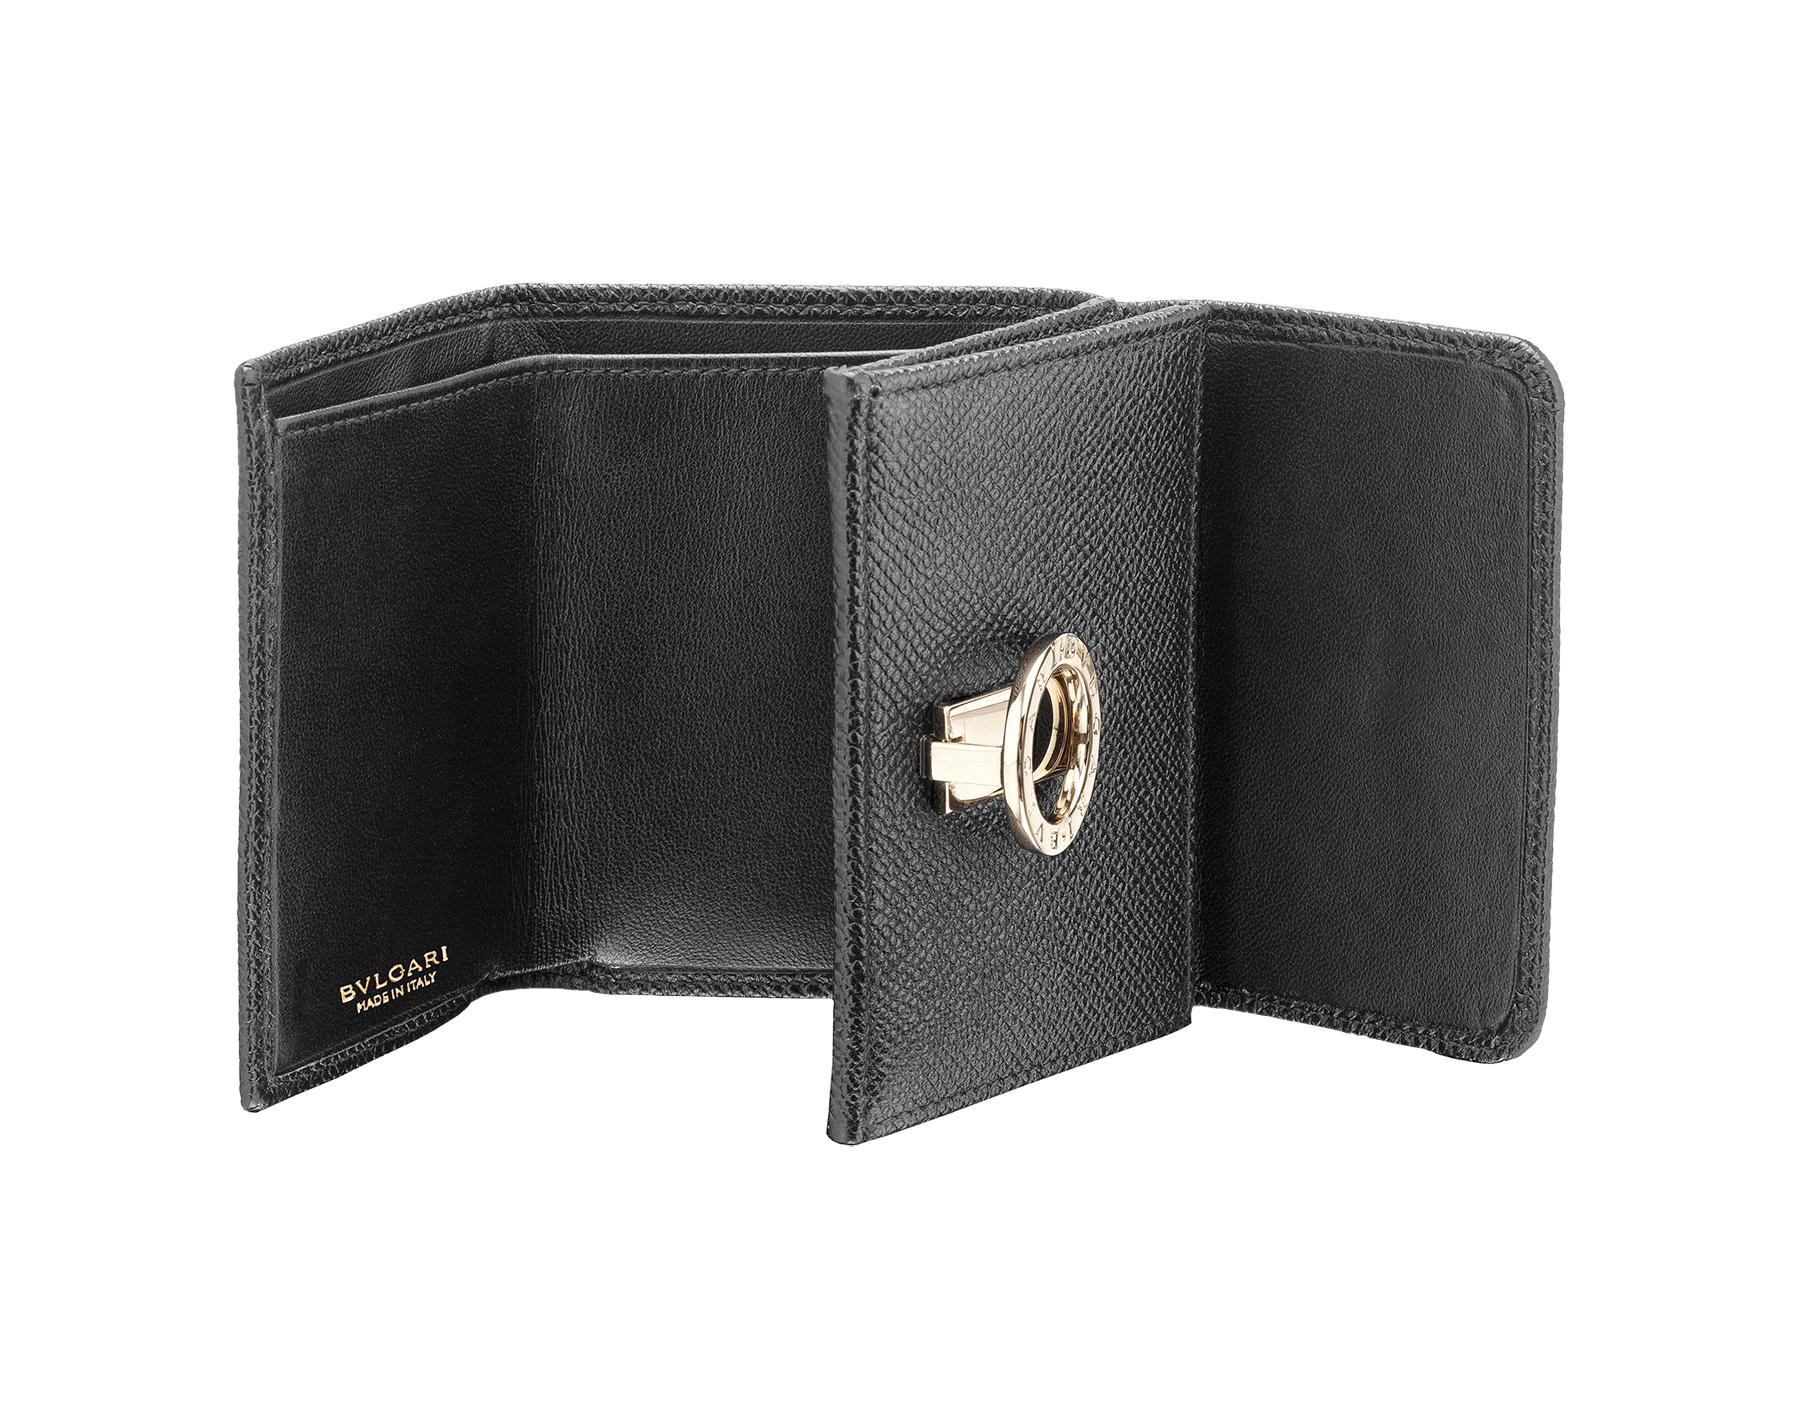 BVLGARI BVLGARI super compact wallet in black grain calf leather and black nappa leather. Iconic logo closure clip in light gold plated brass. 288648 image 2